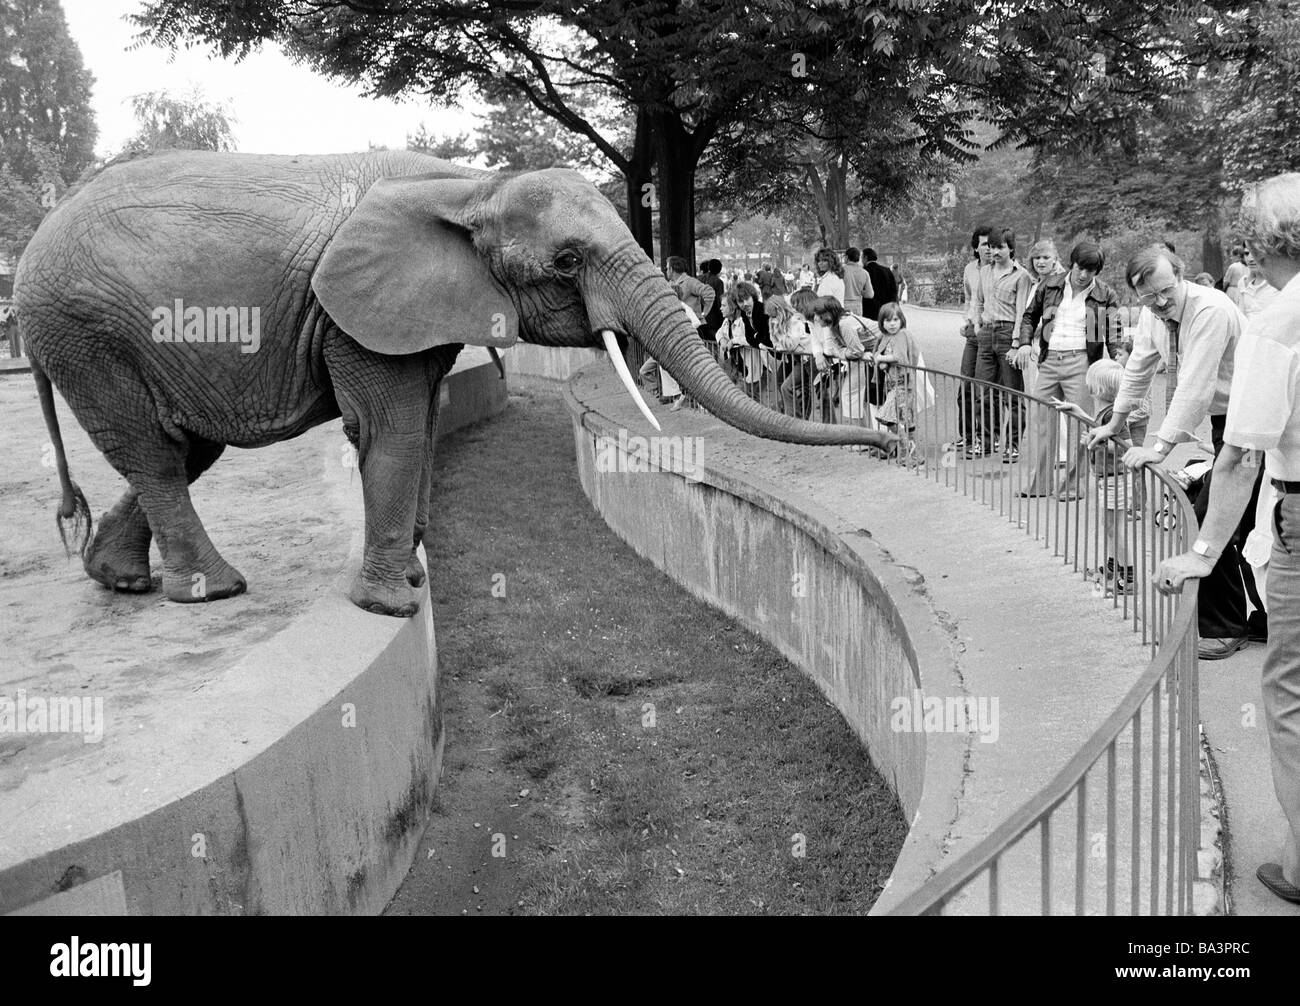 eighties black and white photo human and animal elephant in the